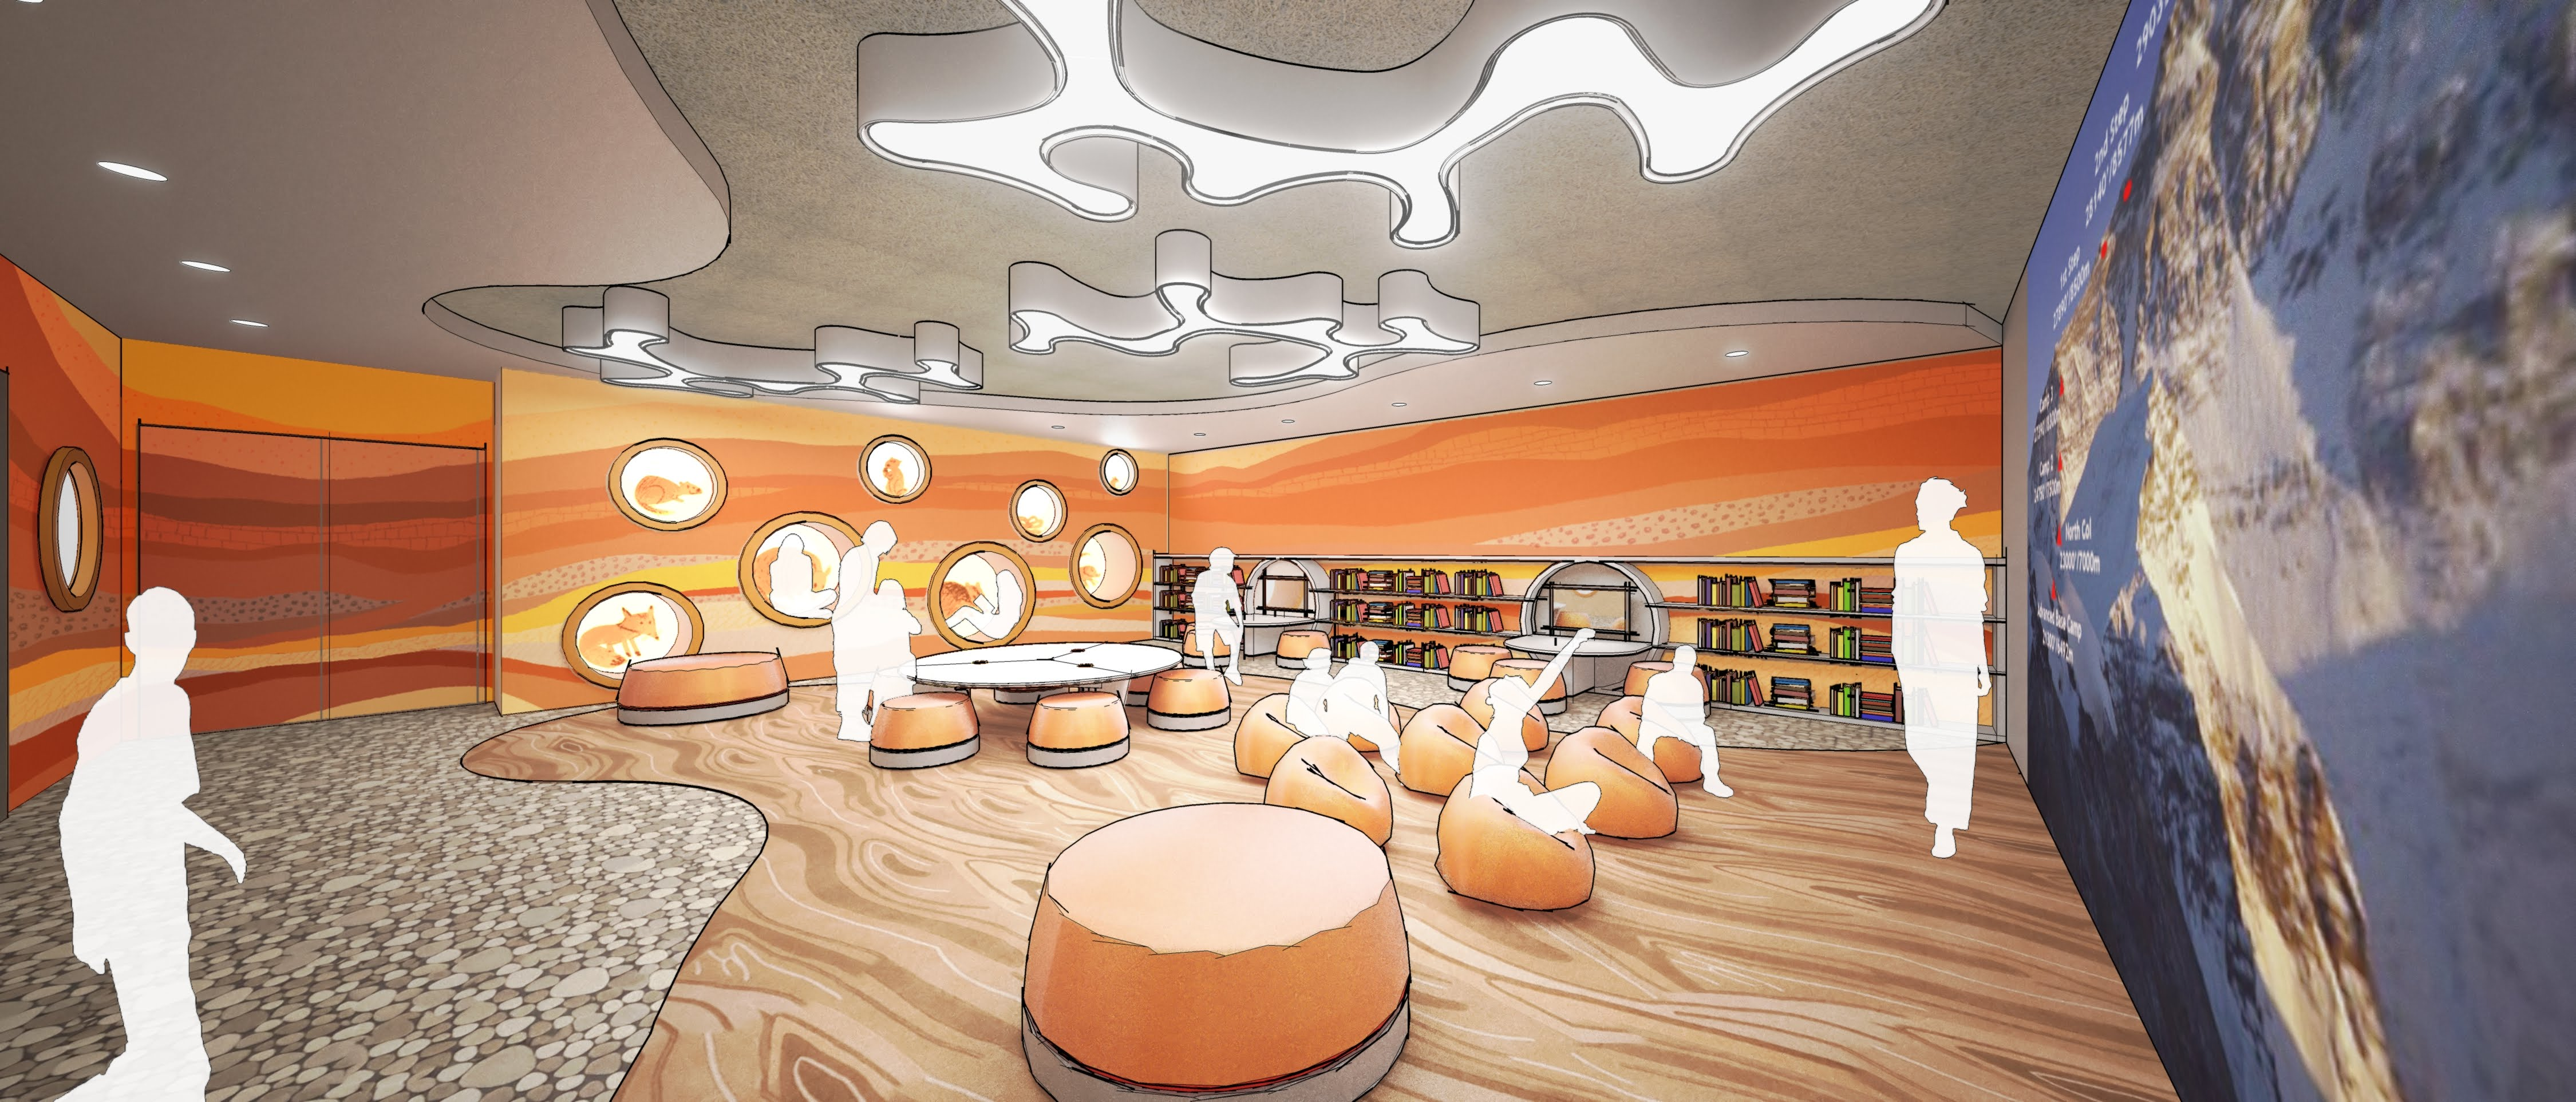 Armstrong Elementary - CLASSROOM FINAL